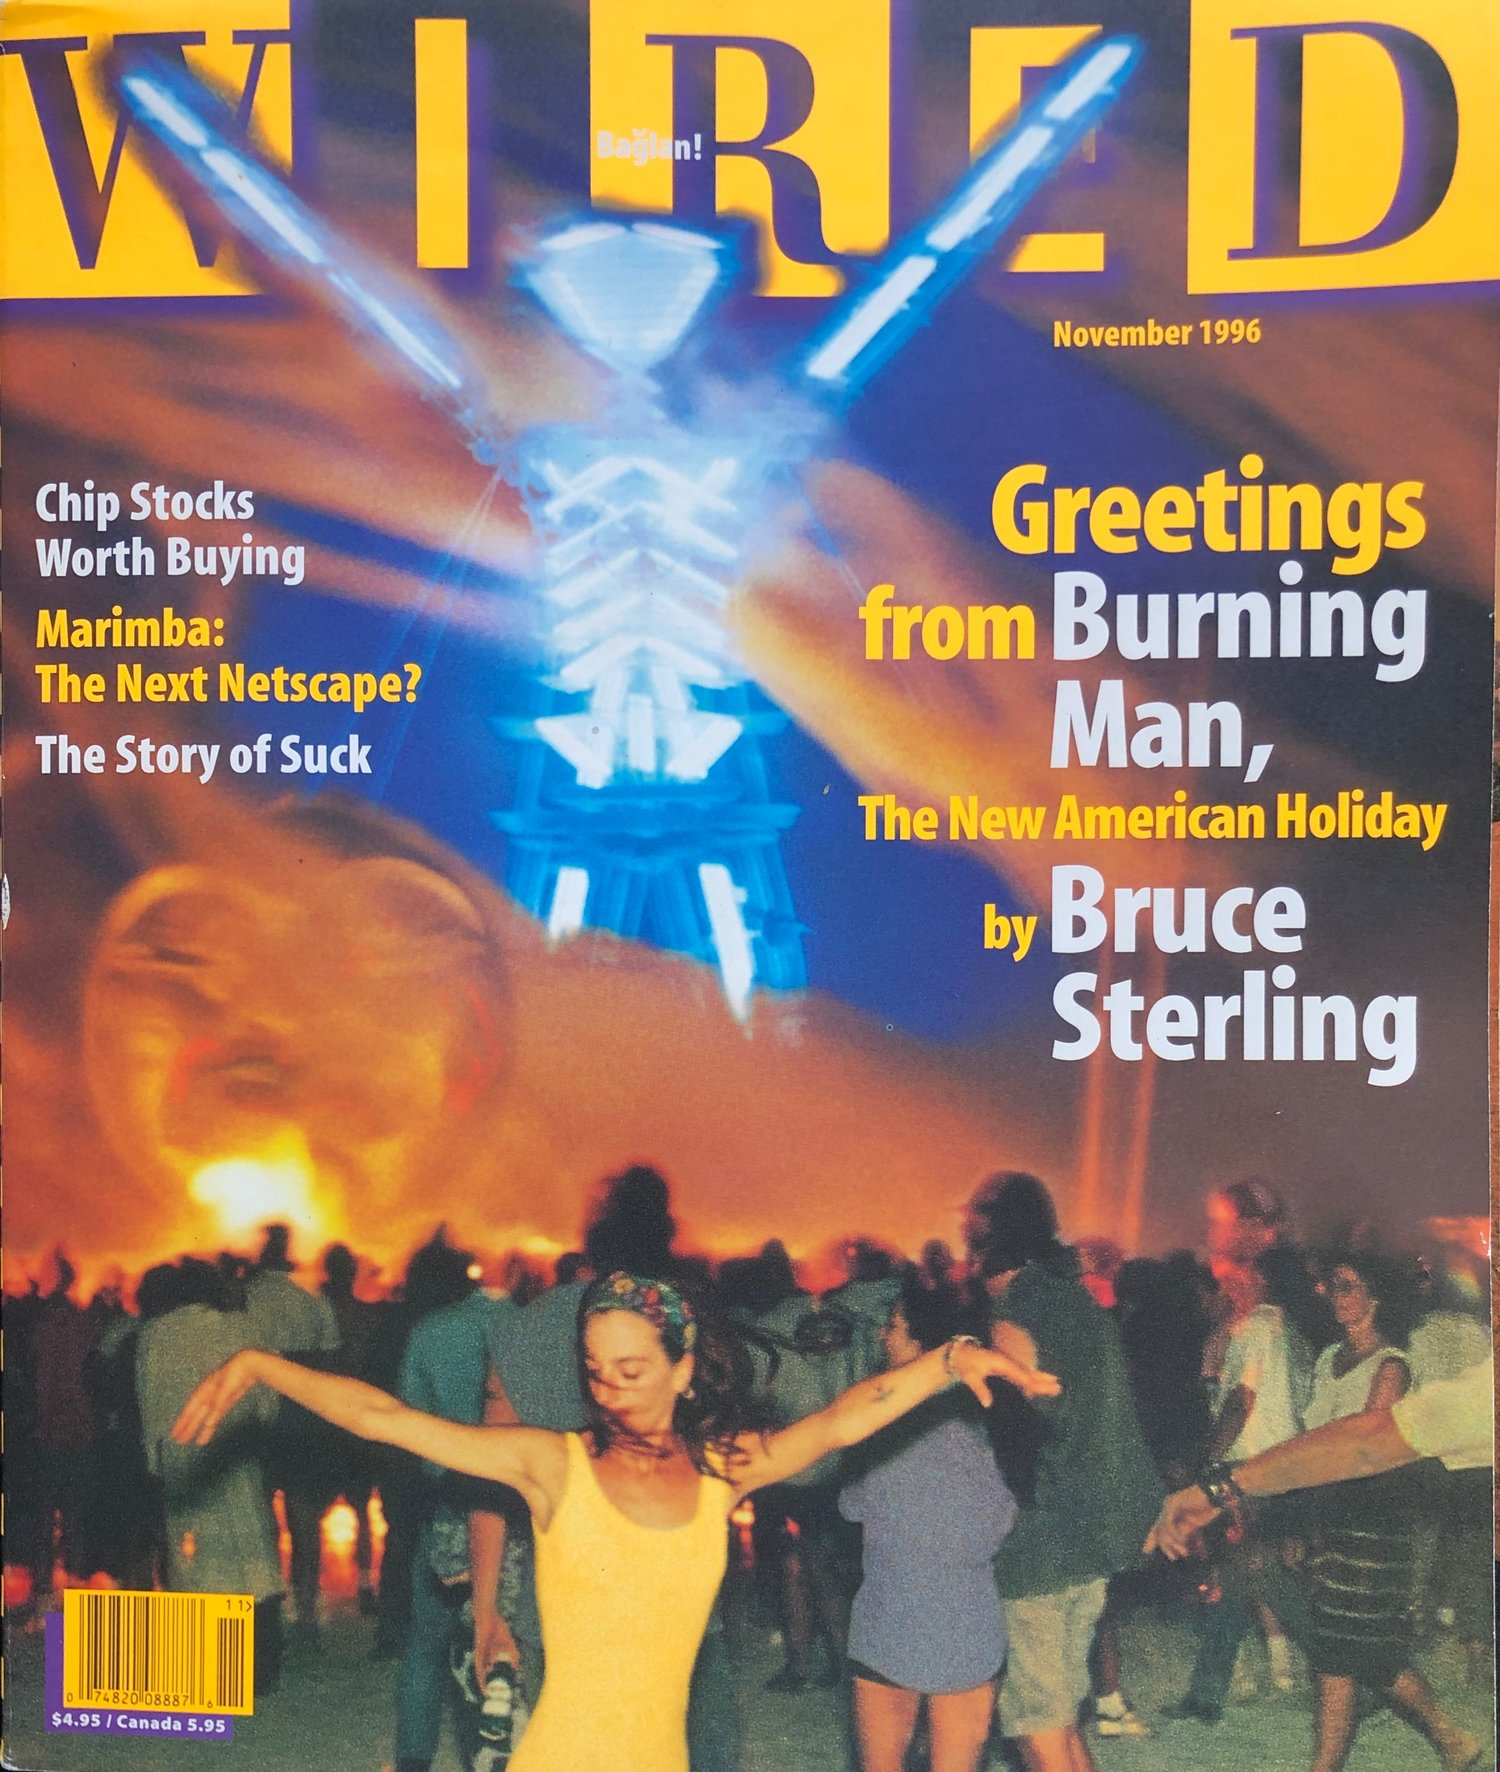 Wired Article - The first in-depth coverage of Burning Man